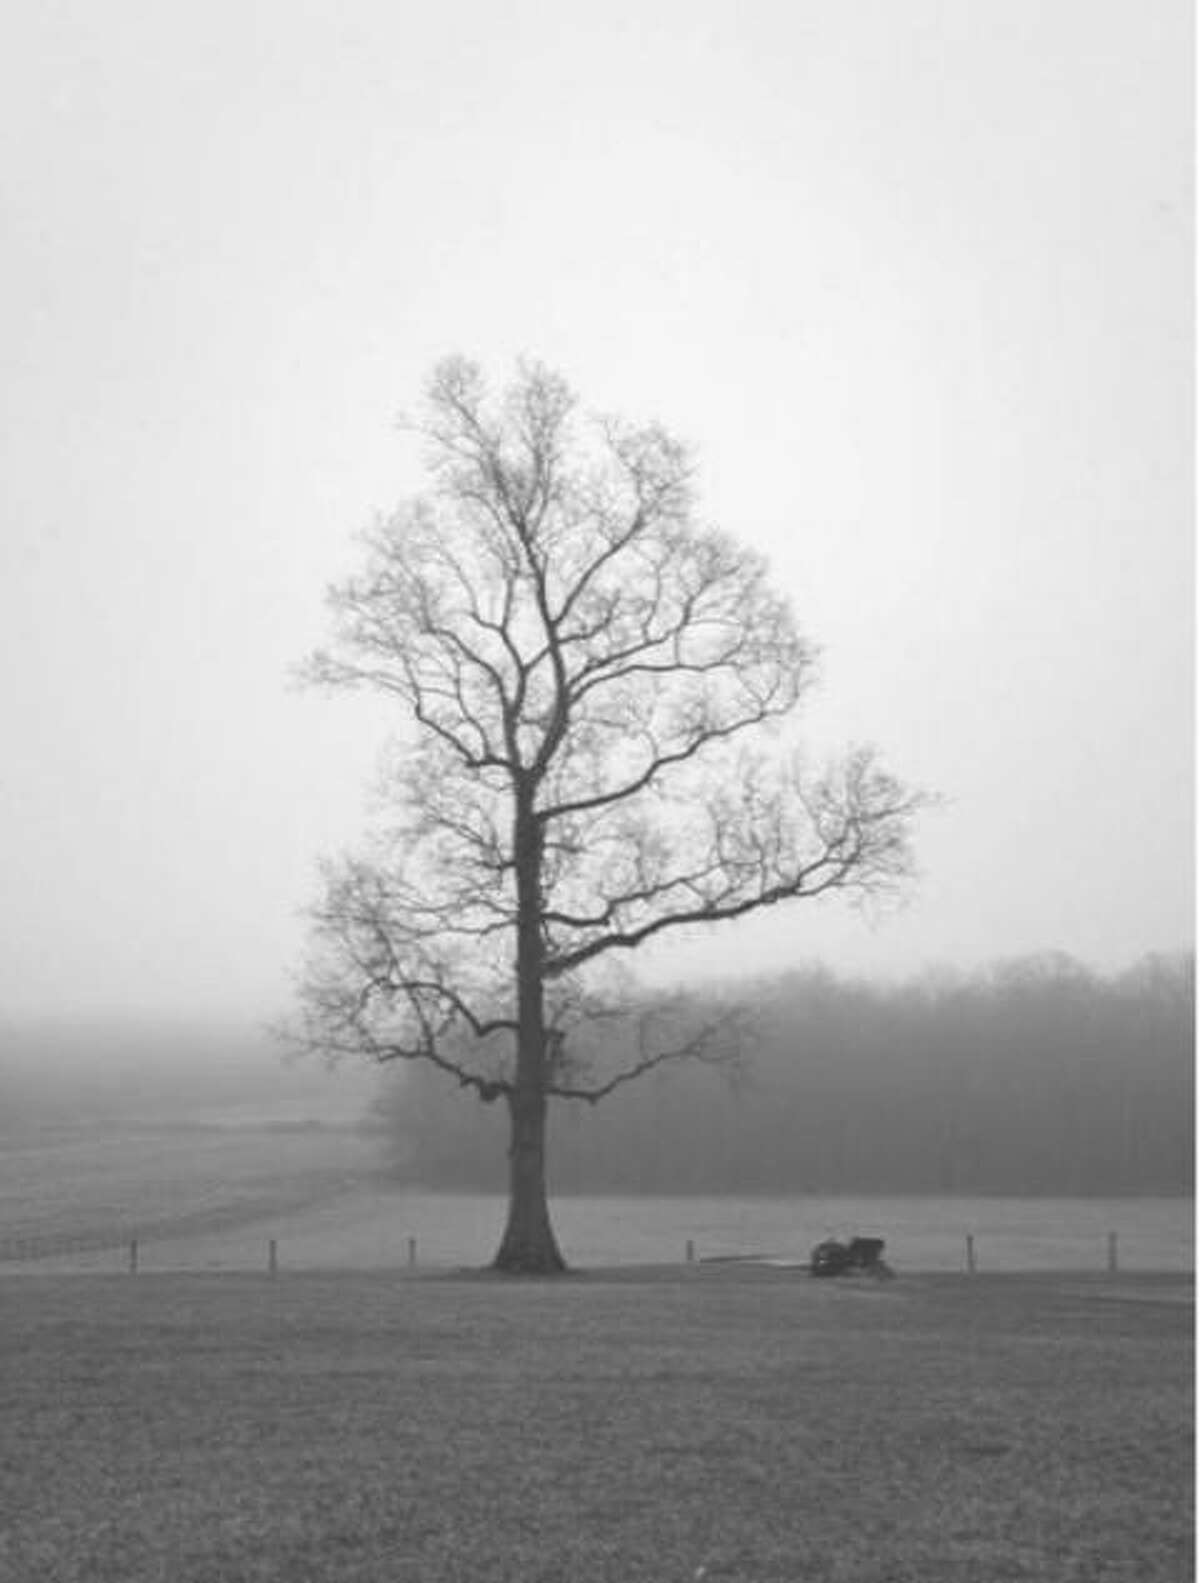 """Spectrum/Students in Linda McMillan's photography class at Shepaug Valley School in Washington recently documented their life during the pandemic. Above is a photograph taken by Shepaug junior Henry James captured a photograph of a lone tree as part of a documentary photo project for school. He wrote: """"Social distancing makes me feel like I stand as alone as this tree. I think that the aspect of social distancing is really affecting how we are all feeling. We are not used to being confined to our houses, not being able to leave for the things we thought were just everyday experiences. Now going to the store for food, going to get gas, as well as visiting friends and family puts us at risk as much as them. We take for granted our freedom in this world. And now that we've lost it, we miss it more than ever."""""""